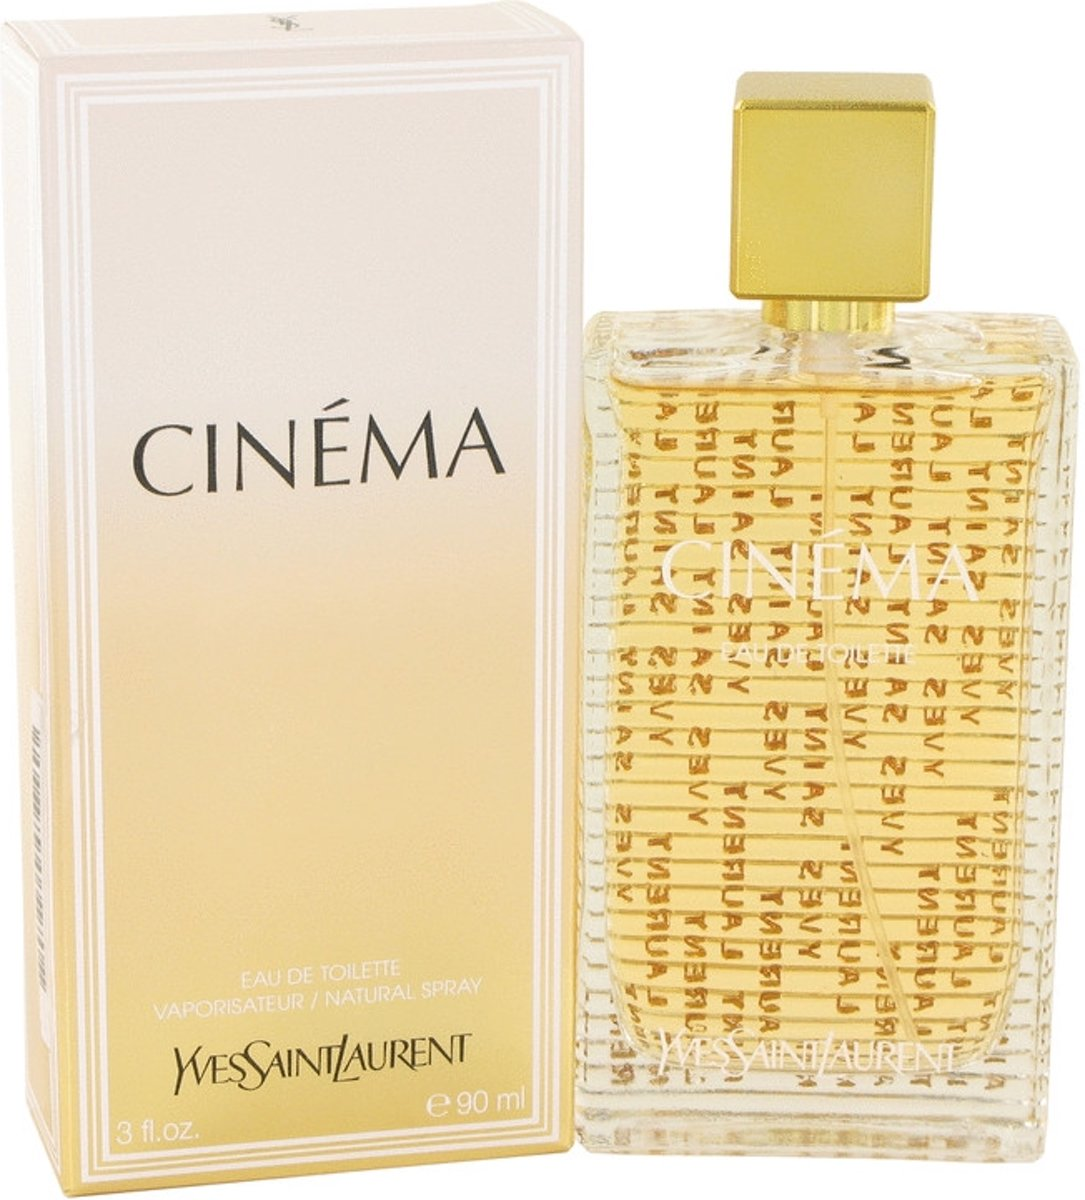 Yves Saint Laurent Cinema EDT 90 ml